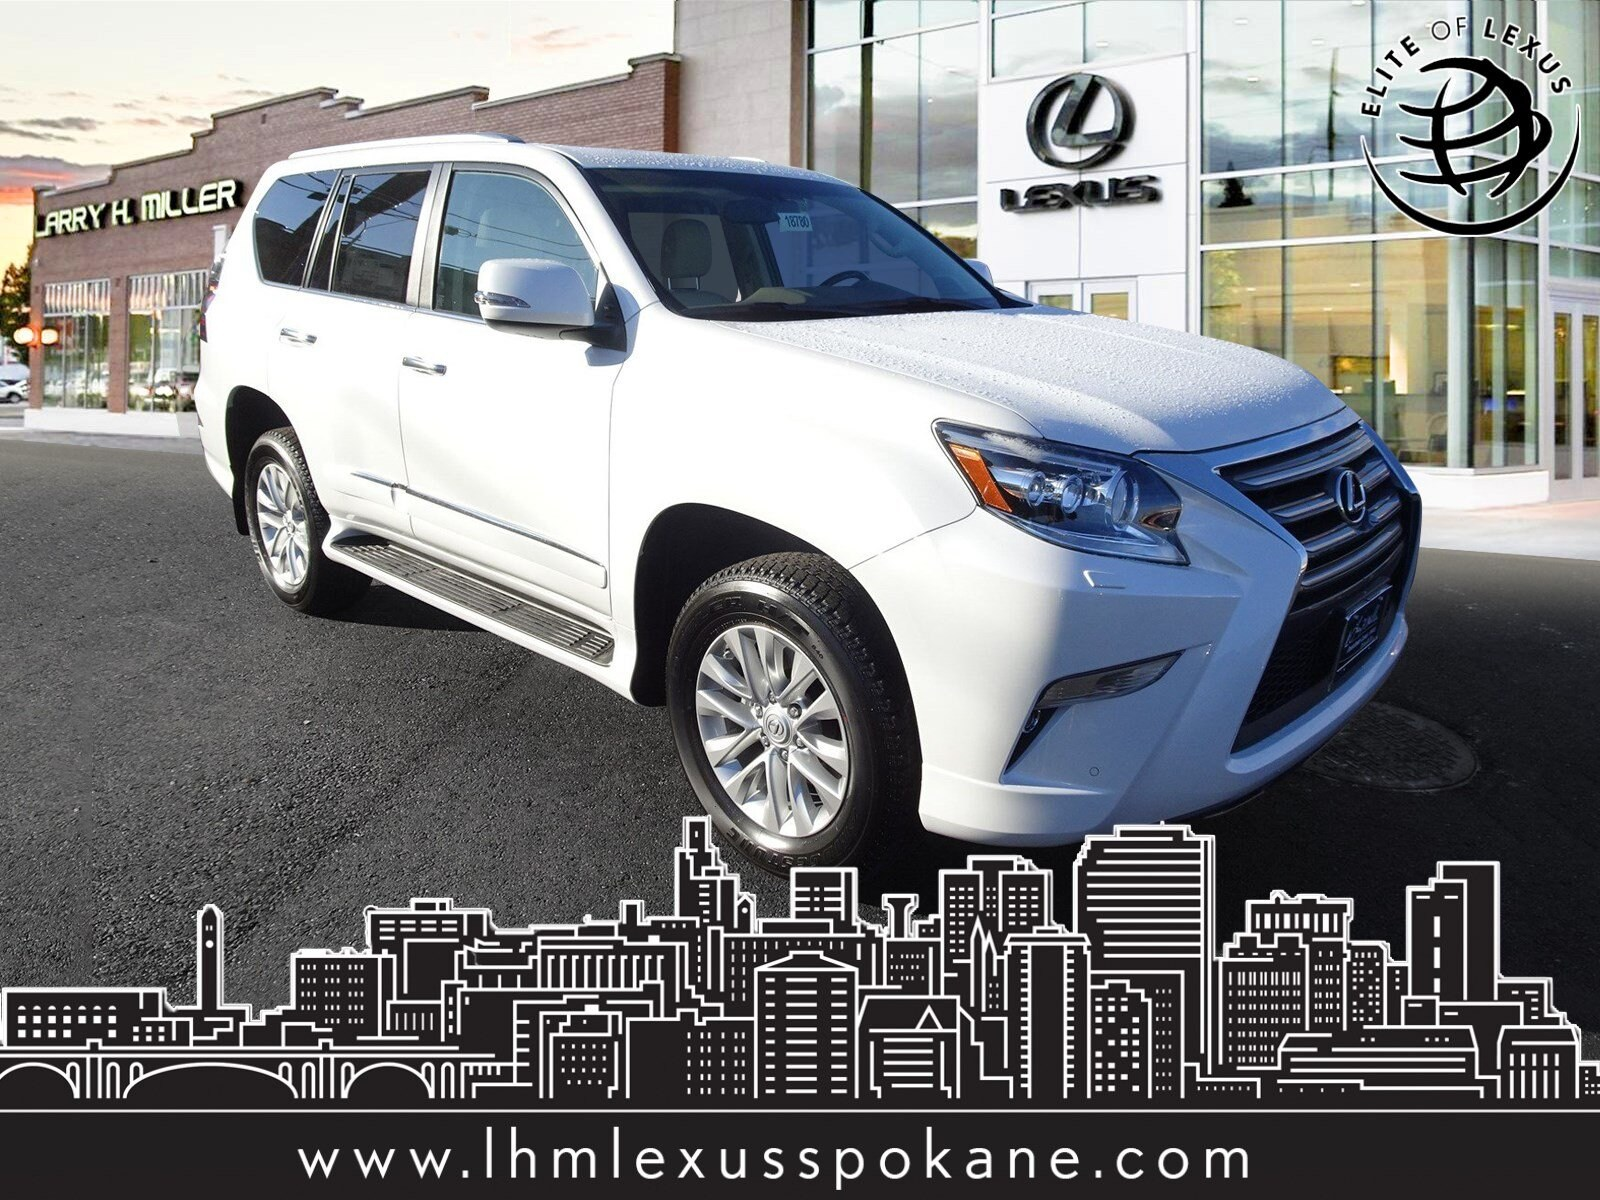 New 2019 LEXUS GX 460 For Sale | Spokane WA | Call 866-983-9314 with